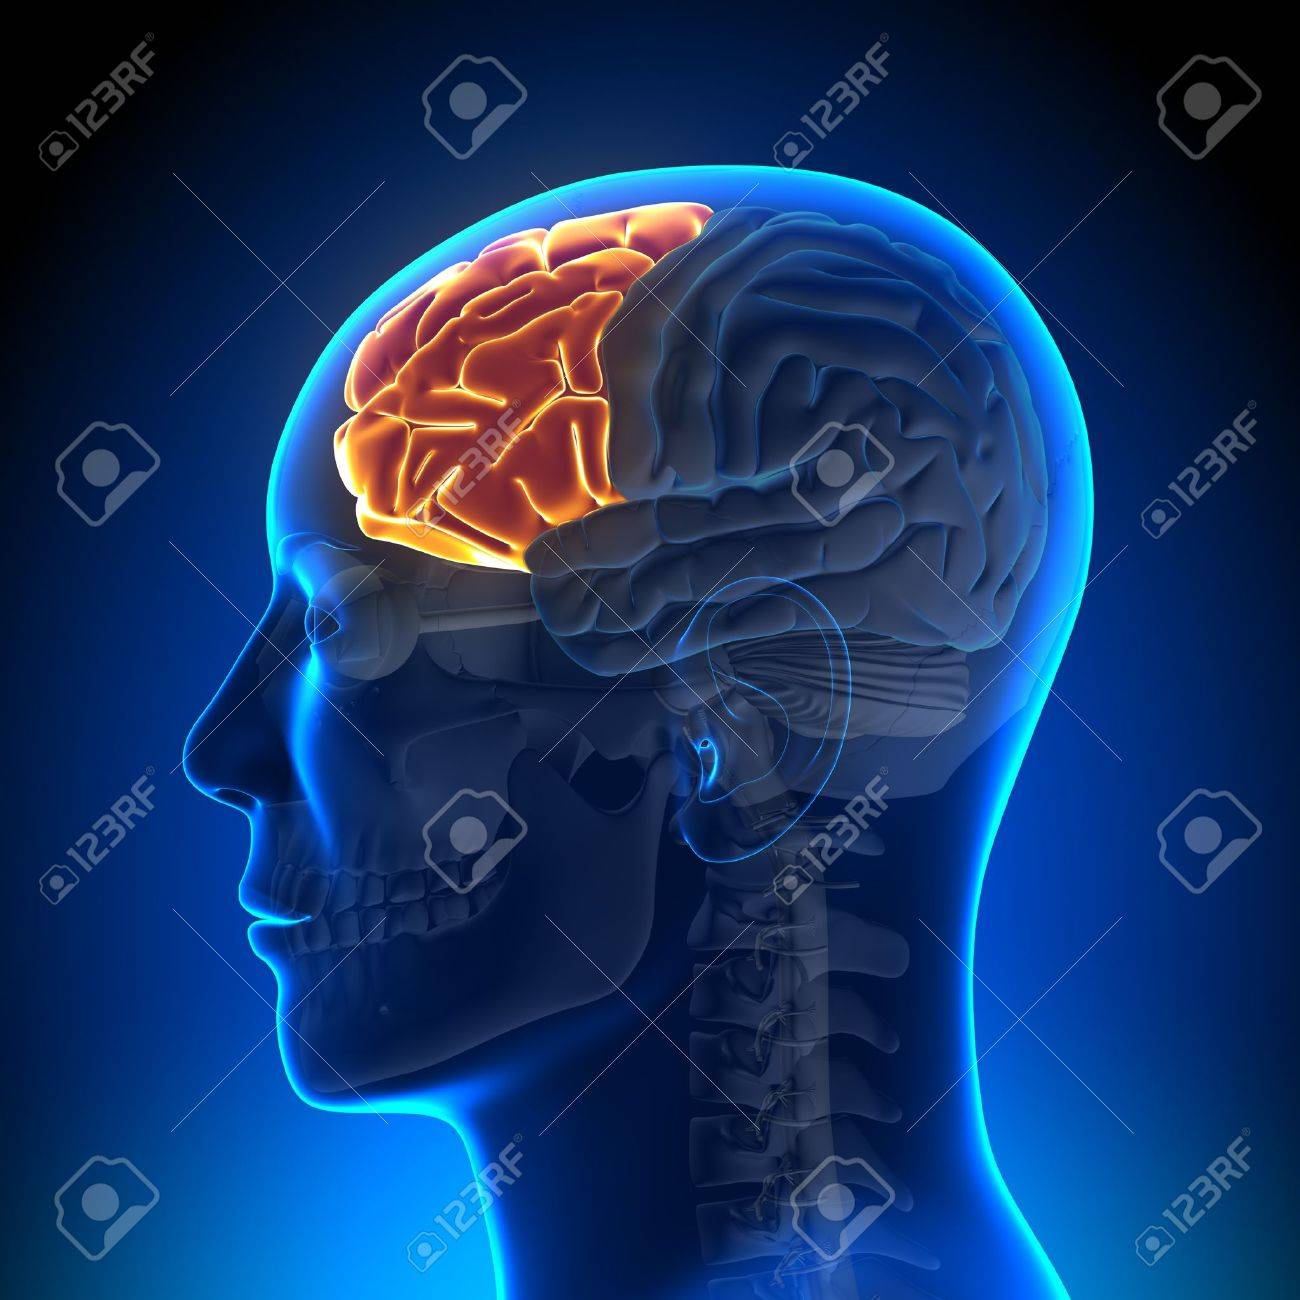 Brain Anatomy Frontal Lobe Stock Photo Picture And Royalty Free